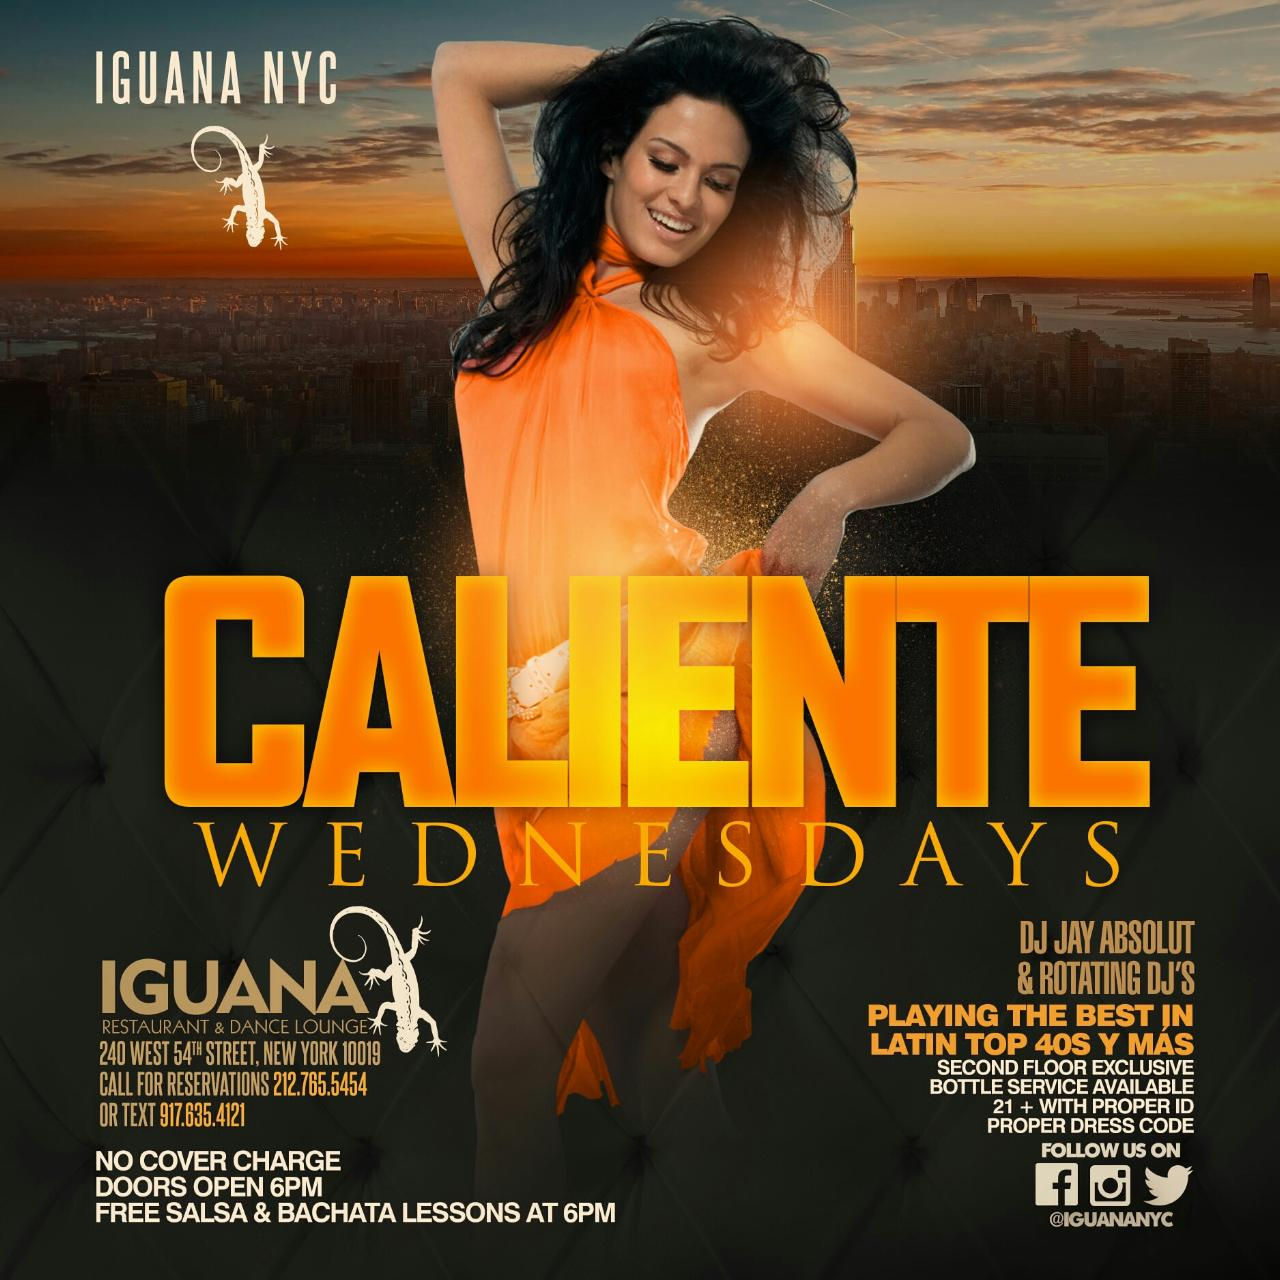 Caliente Wednesdays @ Iguana NYC